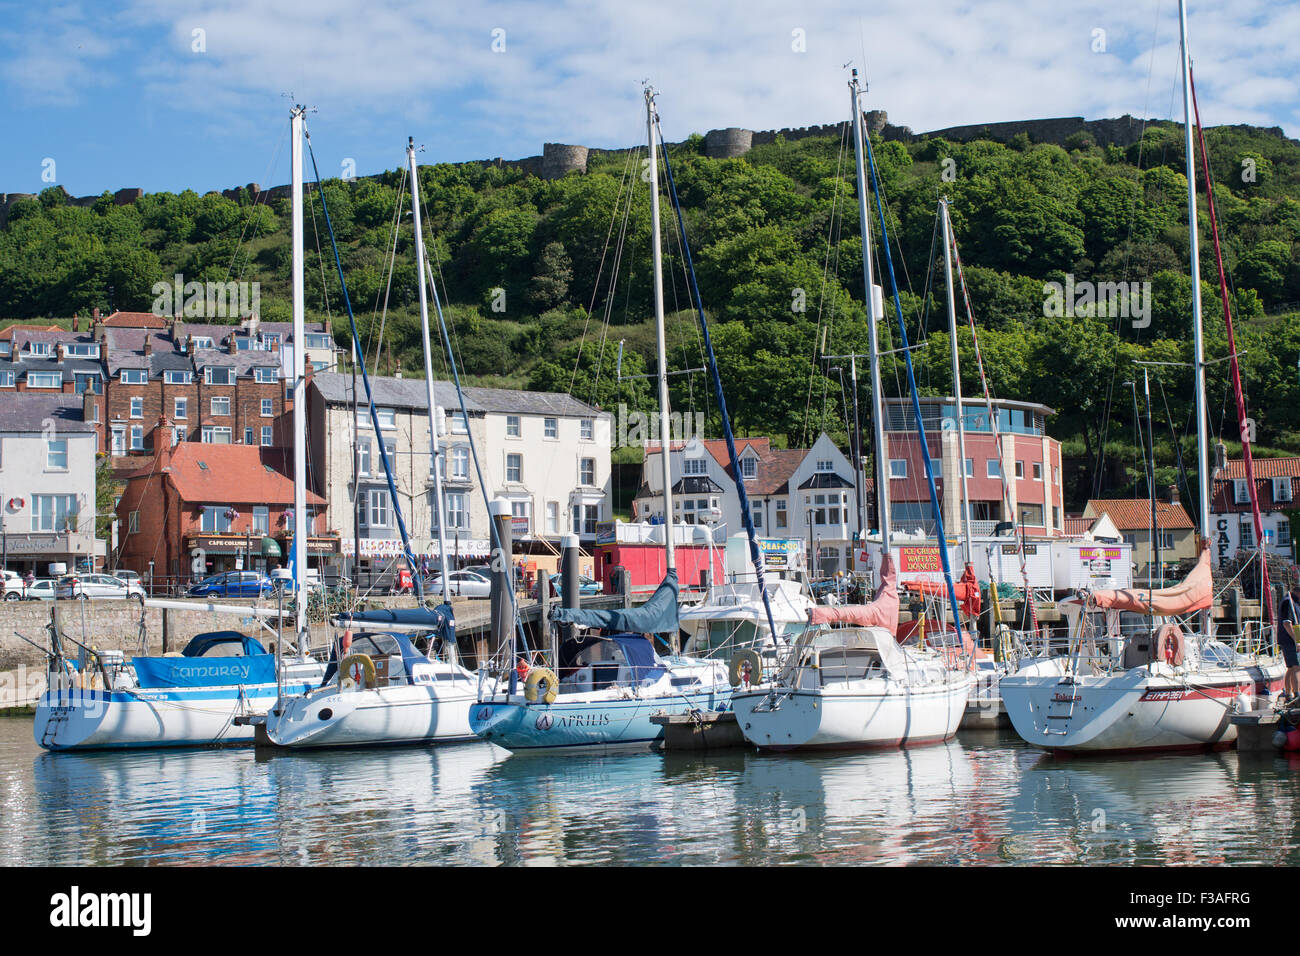 Yachts tied up in Scarborough harborough - Stock Image